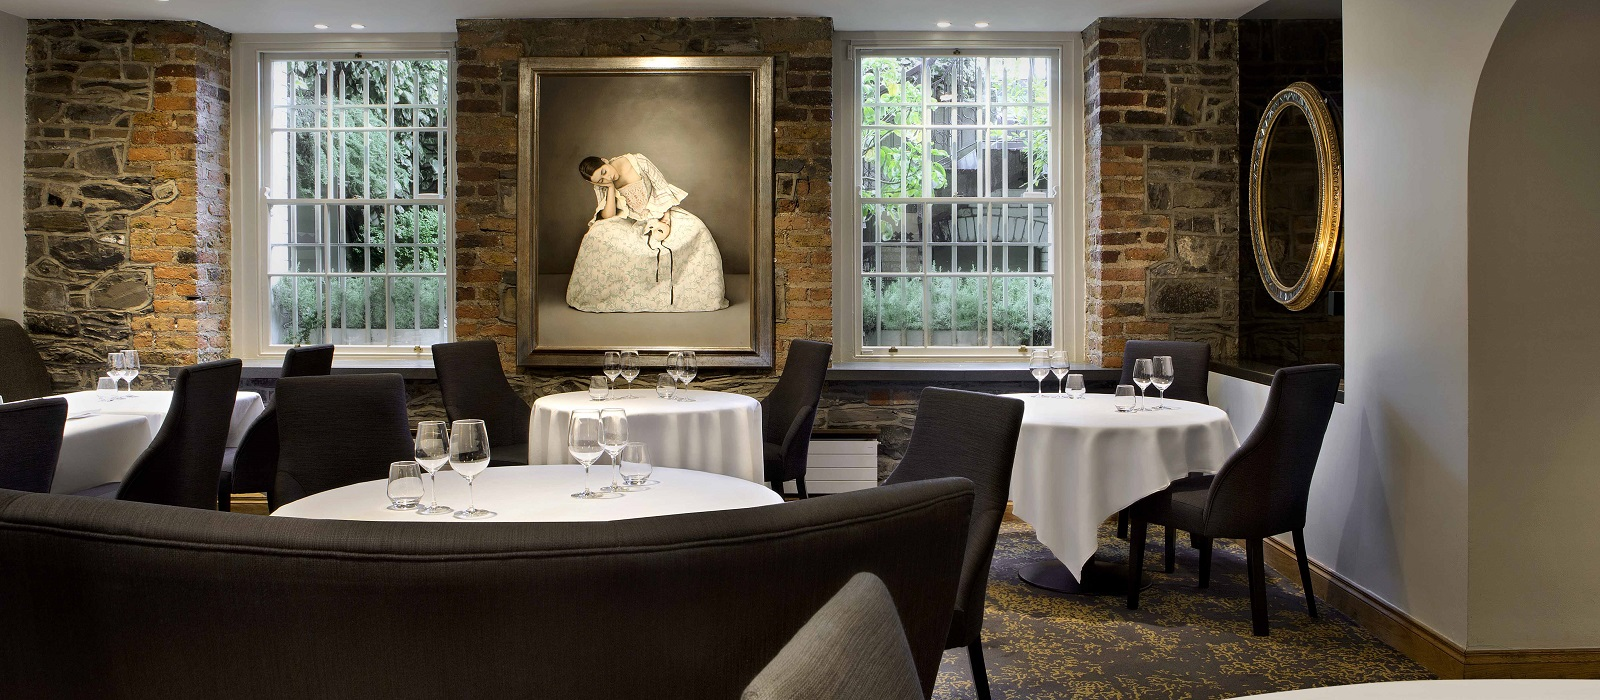 Chapter One Restaurant Is A Michelin Star Restaurant In